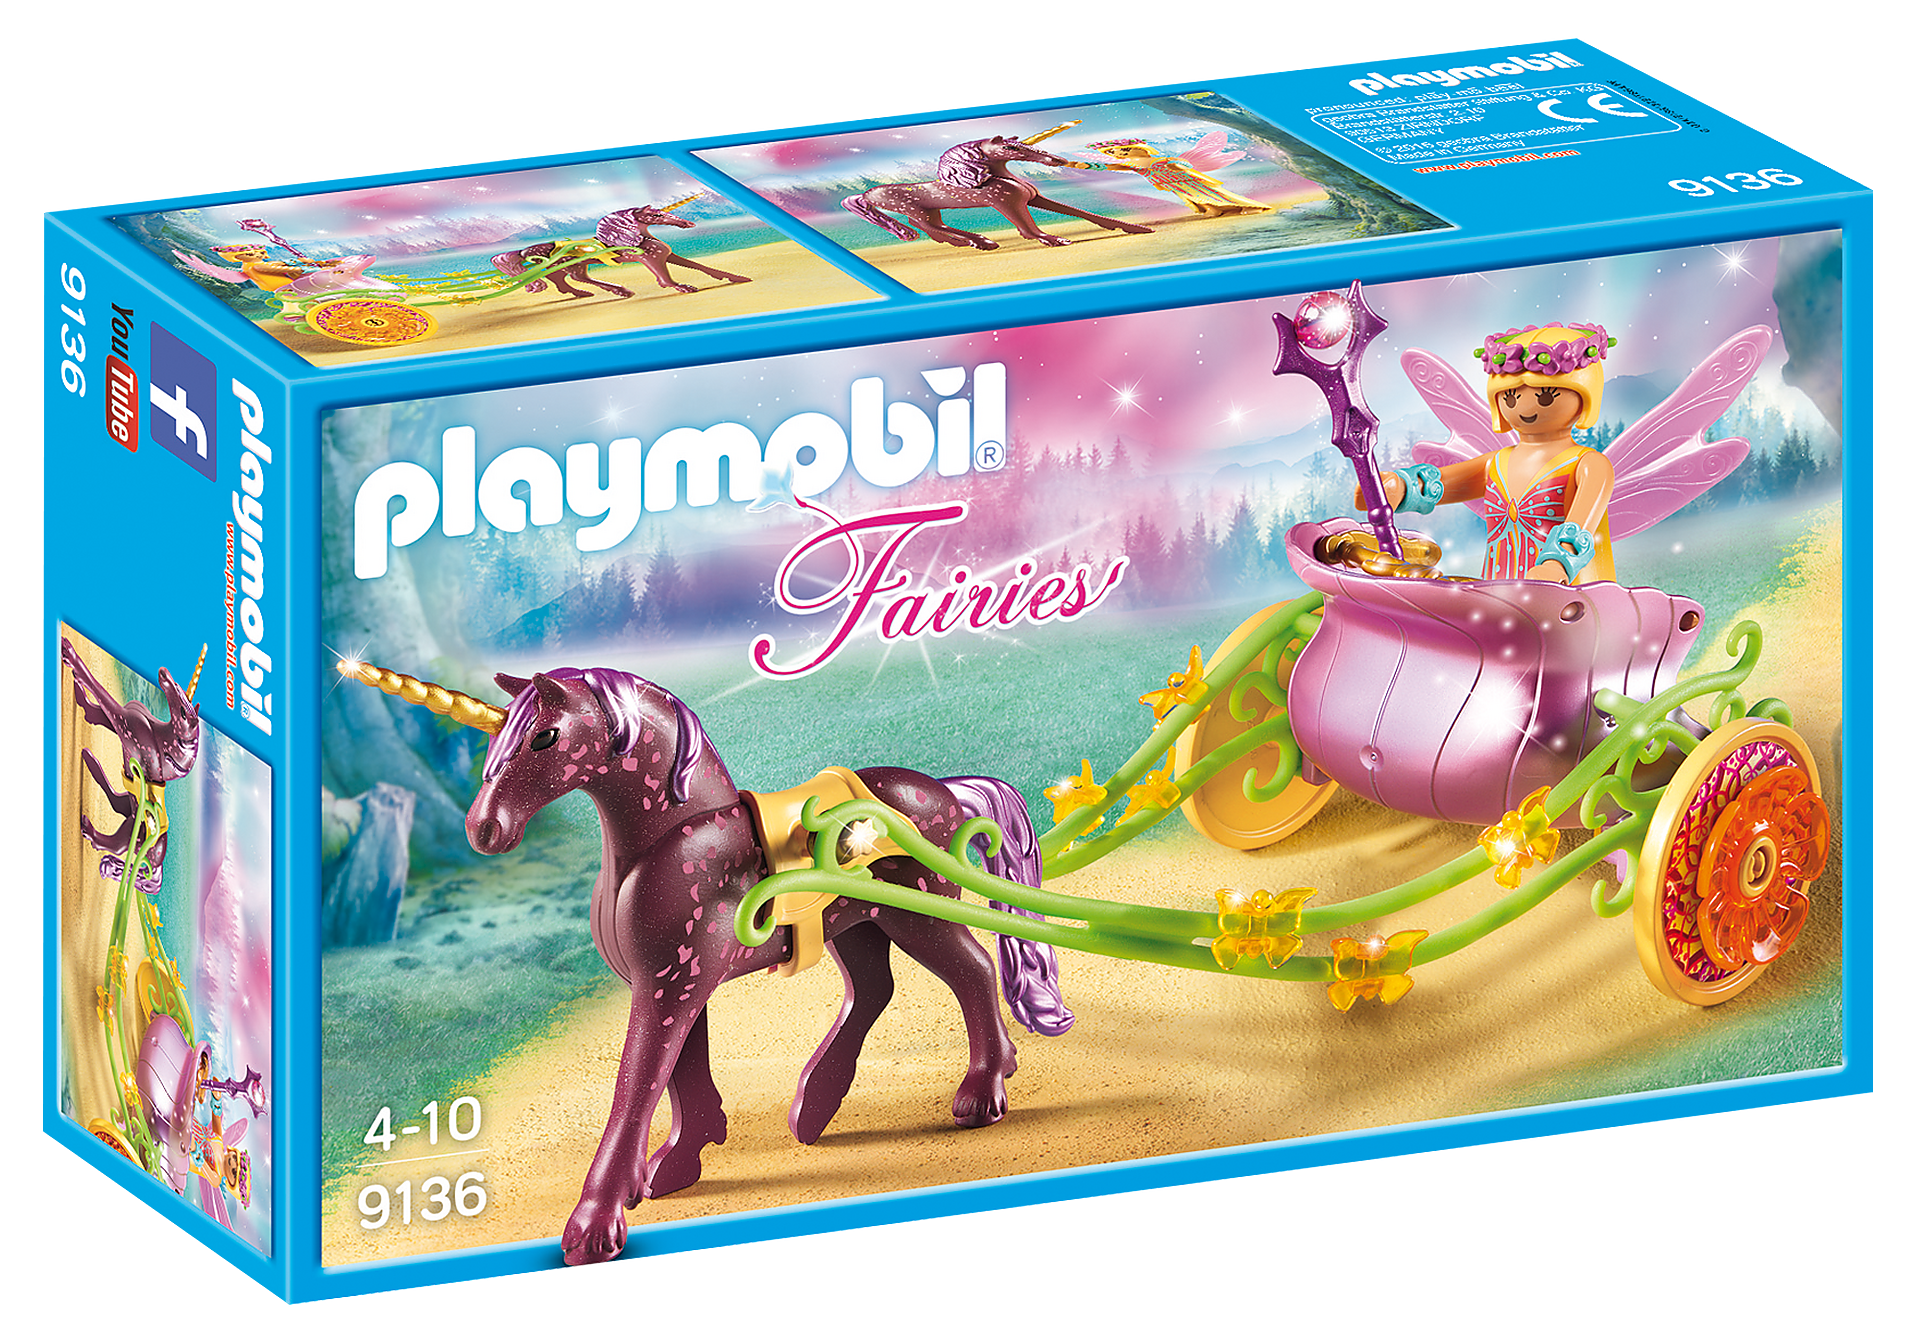 http://media.playmobil.com/i/playmobil/9136_product_box_front/Νεραϊδοάμαξα με μονόκερο